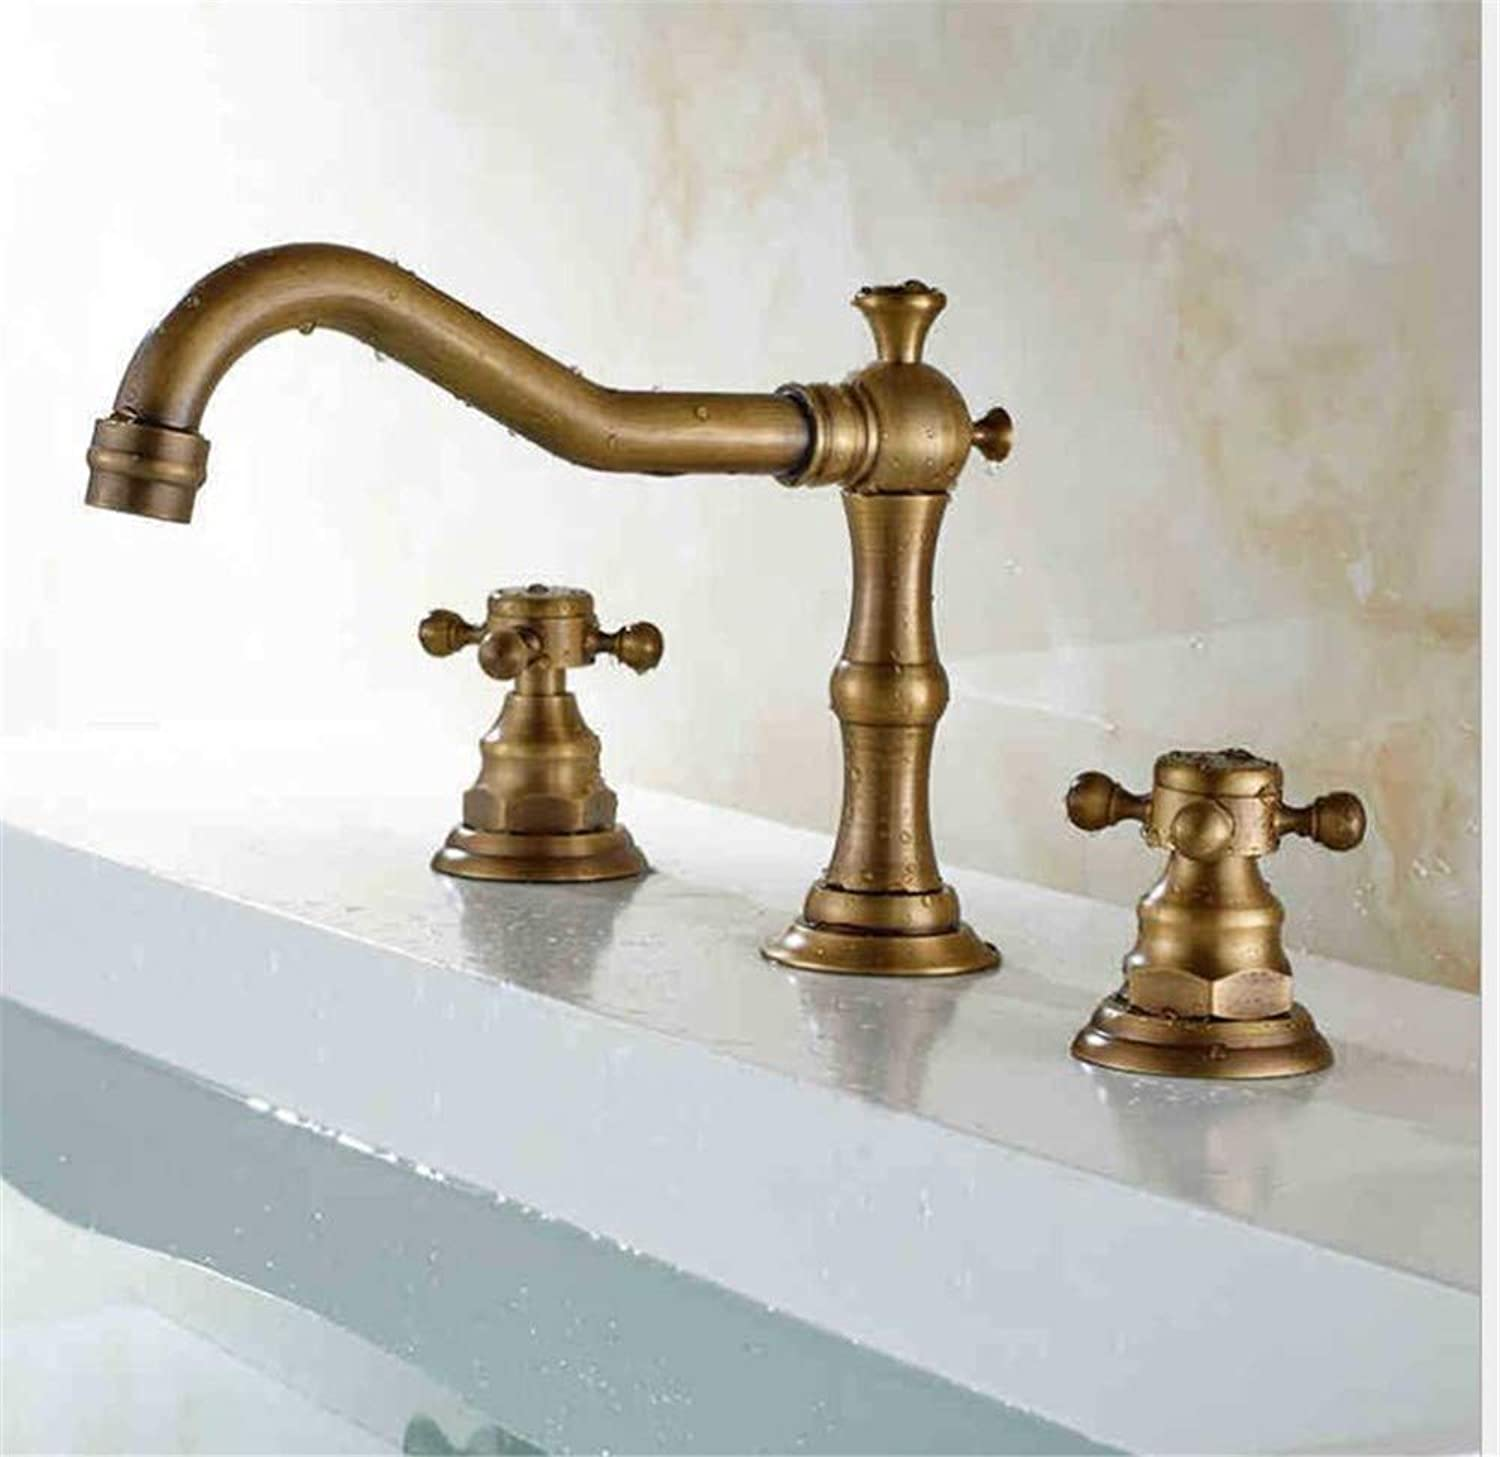 Bathroom Sink Basin Lever Mixer Tap Copper-European Three-Hole Basin Faucet Imitating Antique Copper Washbasin Cold and Hot Water Faucet Toilet Faucet